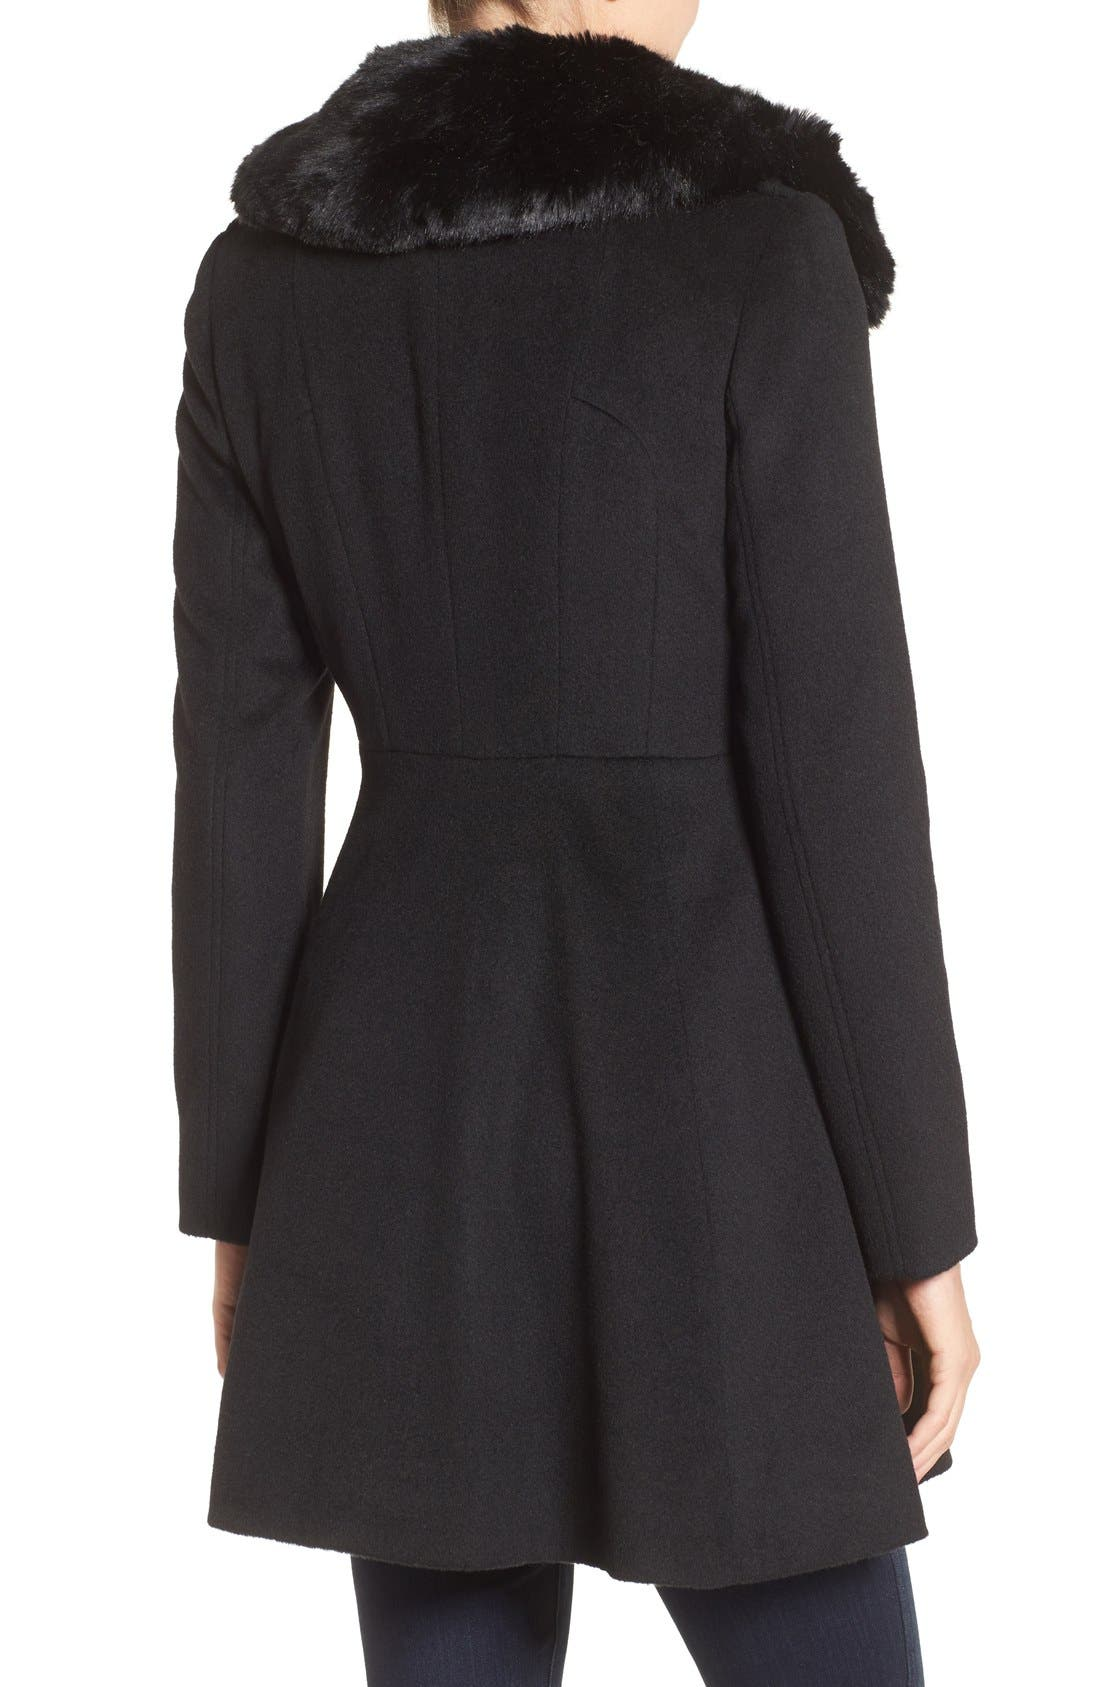 Double Breasted Coat with Faux Fur Collar,                             Alternate thumbnail 2, color,                             Black